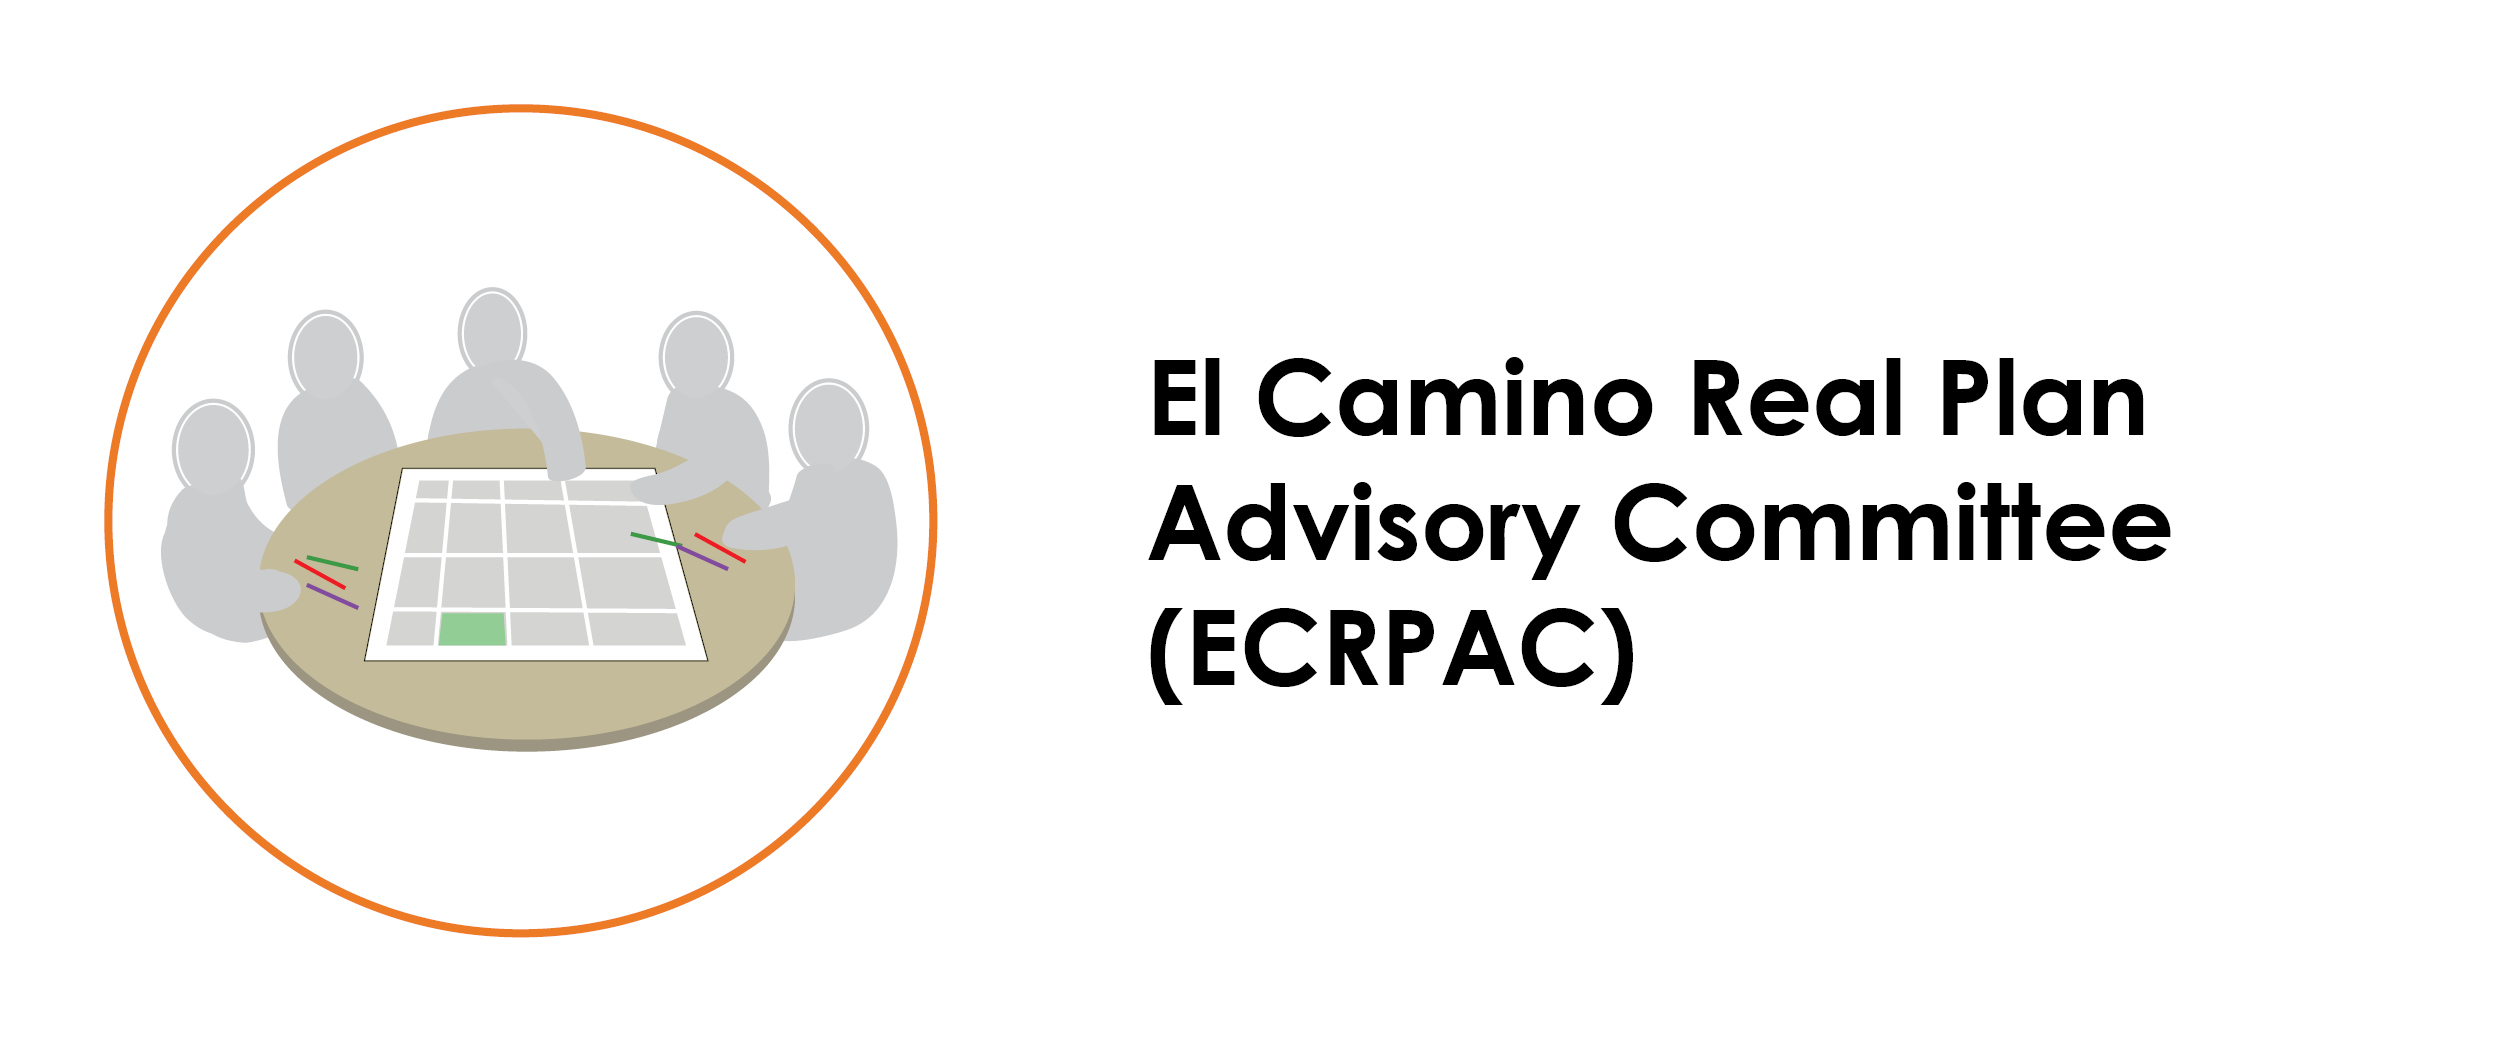 El Caminor Real Plan Advisory Committee (ECRPAC). Click on image to learn more.